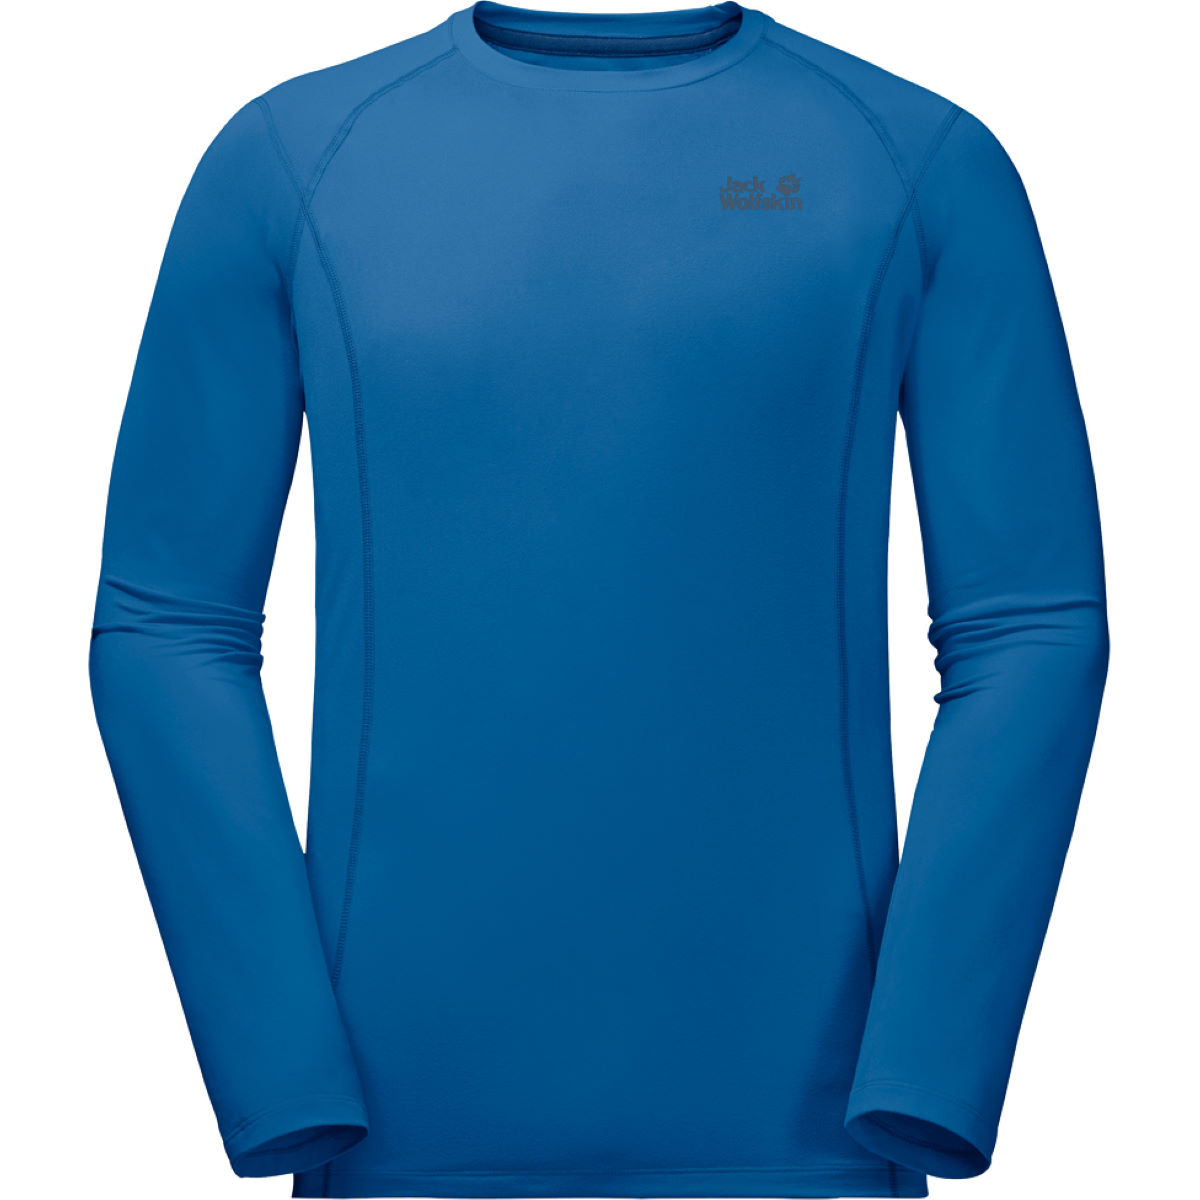 Jack Wolfskin Hollow Range Long Sleeve Top - Camisetas